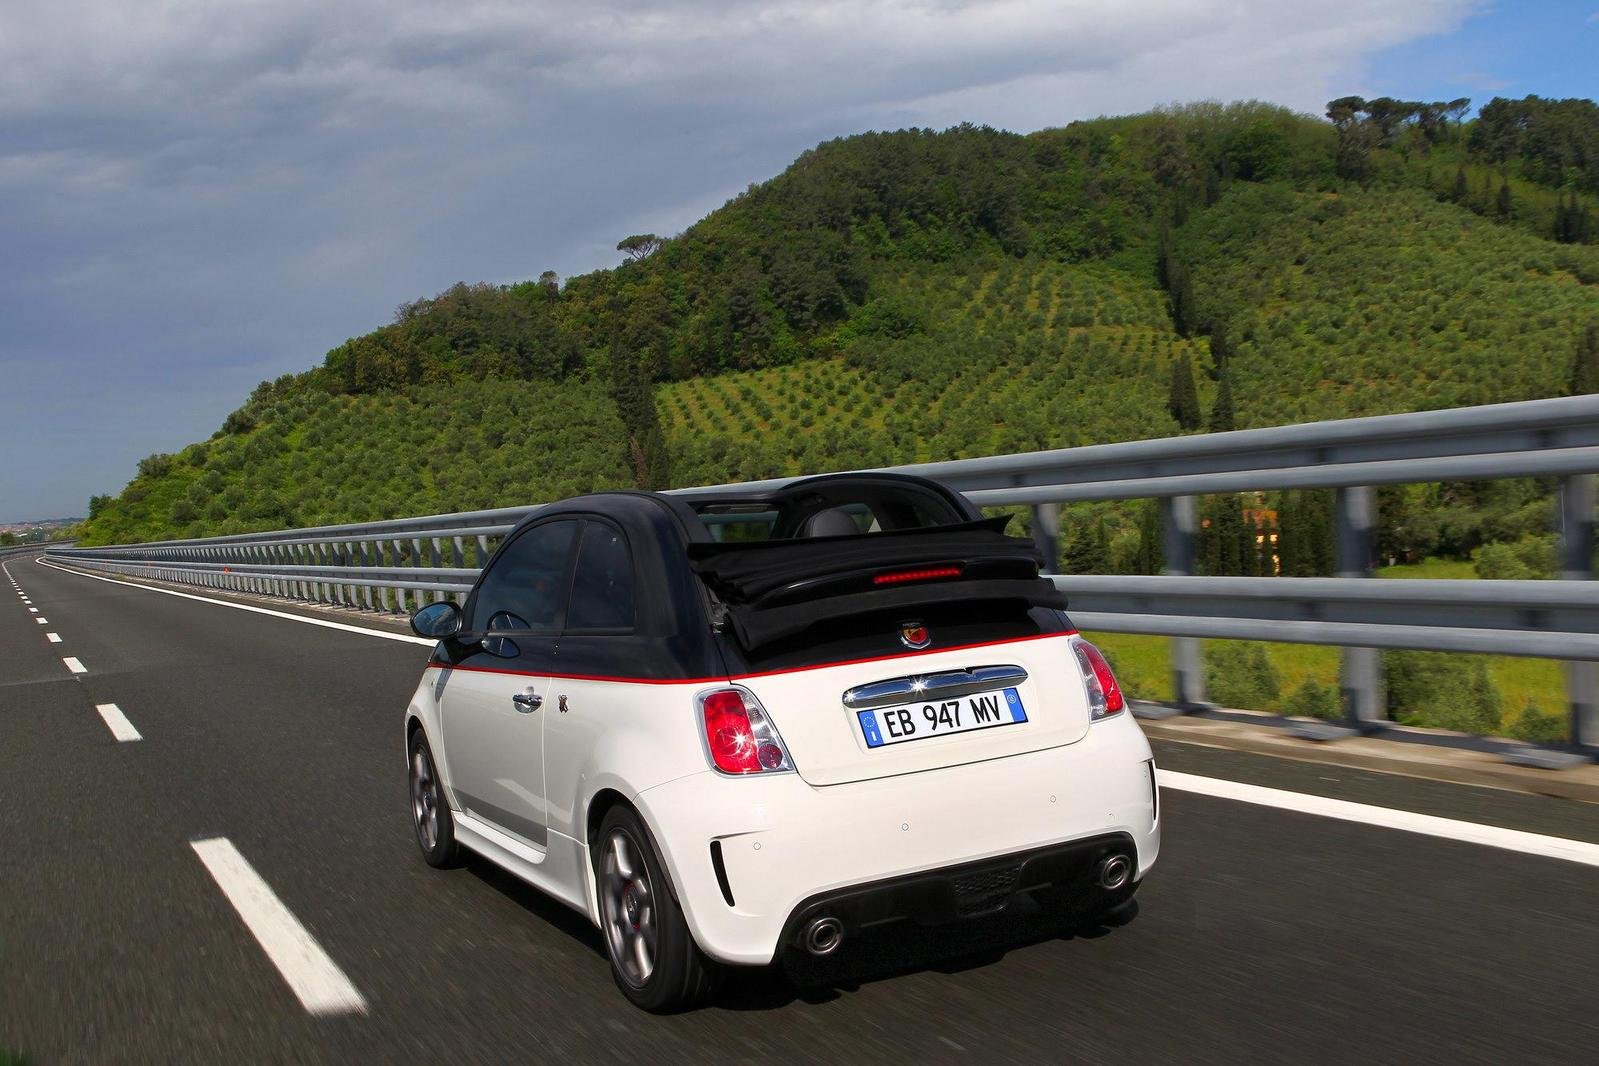 2010 abarth 500c picture 365592 car review top speed for Garage abarth paris